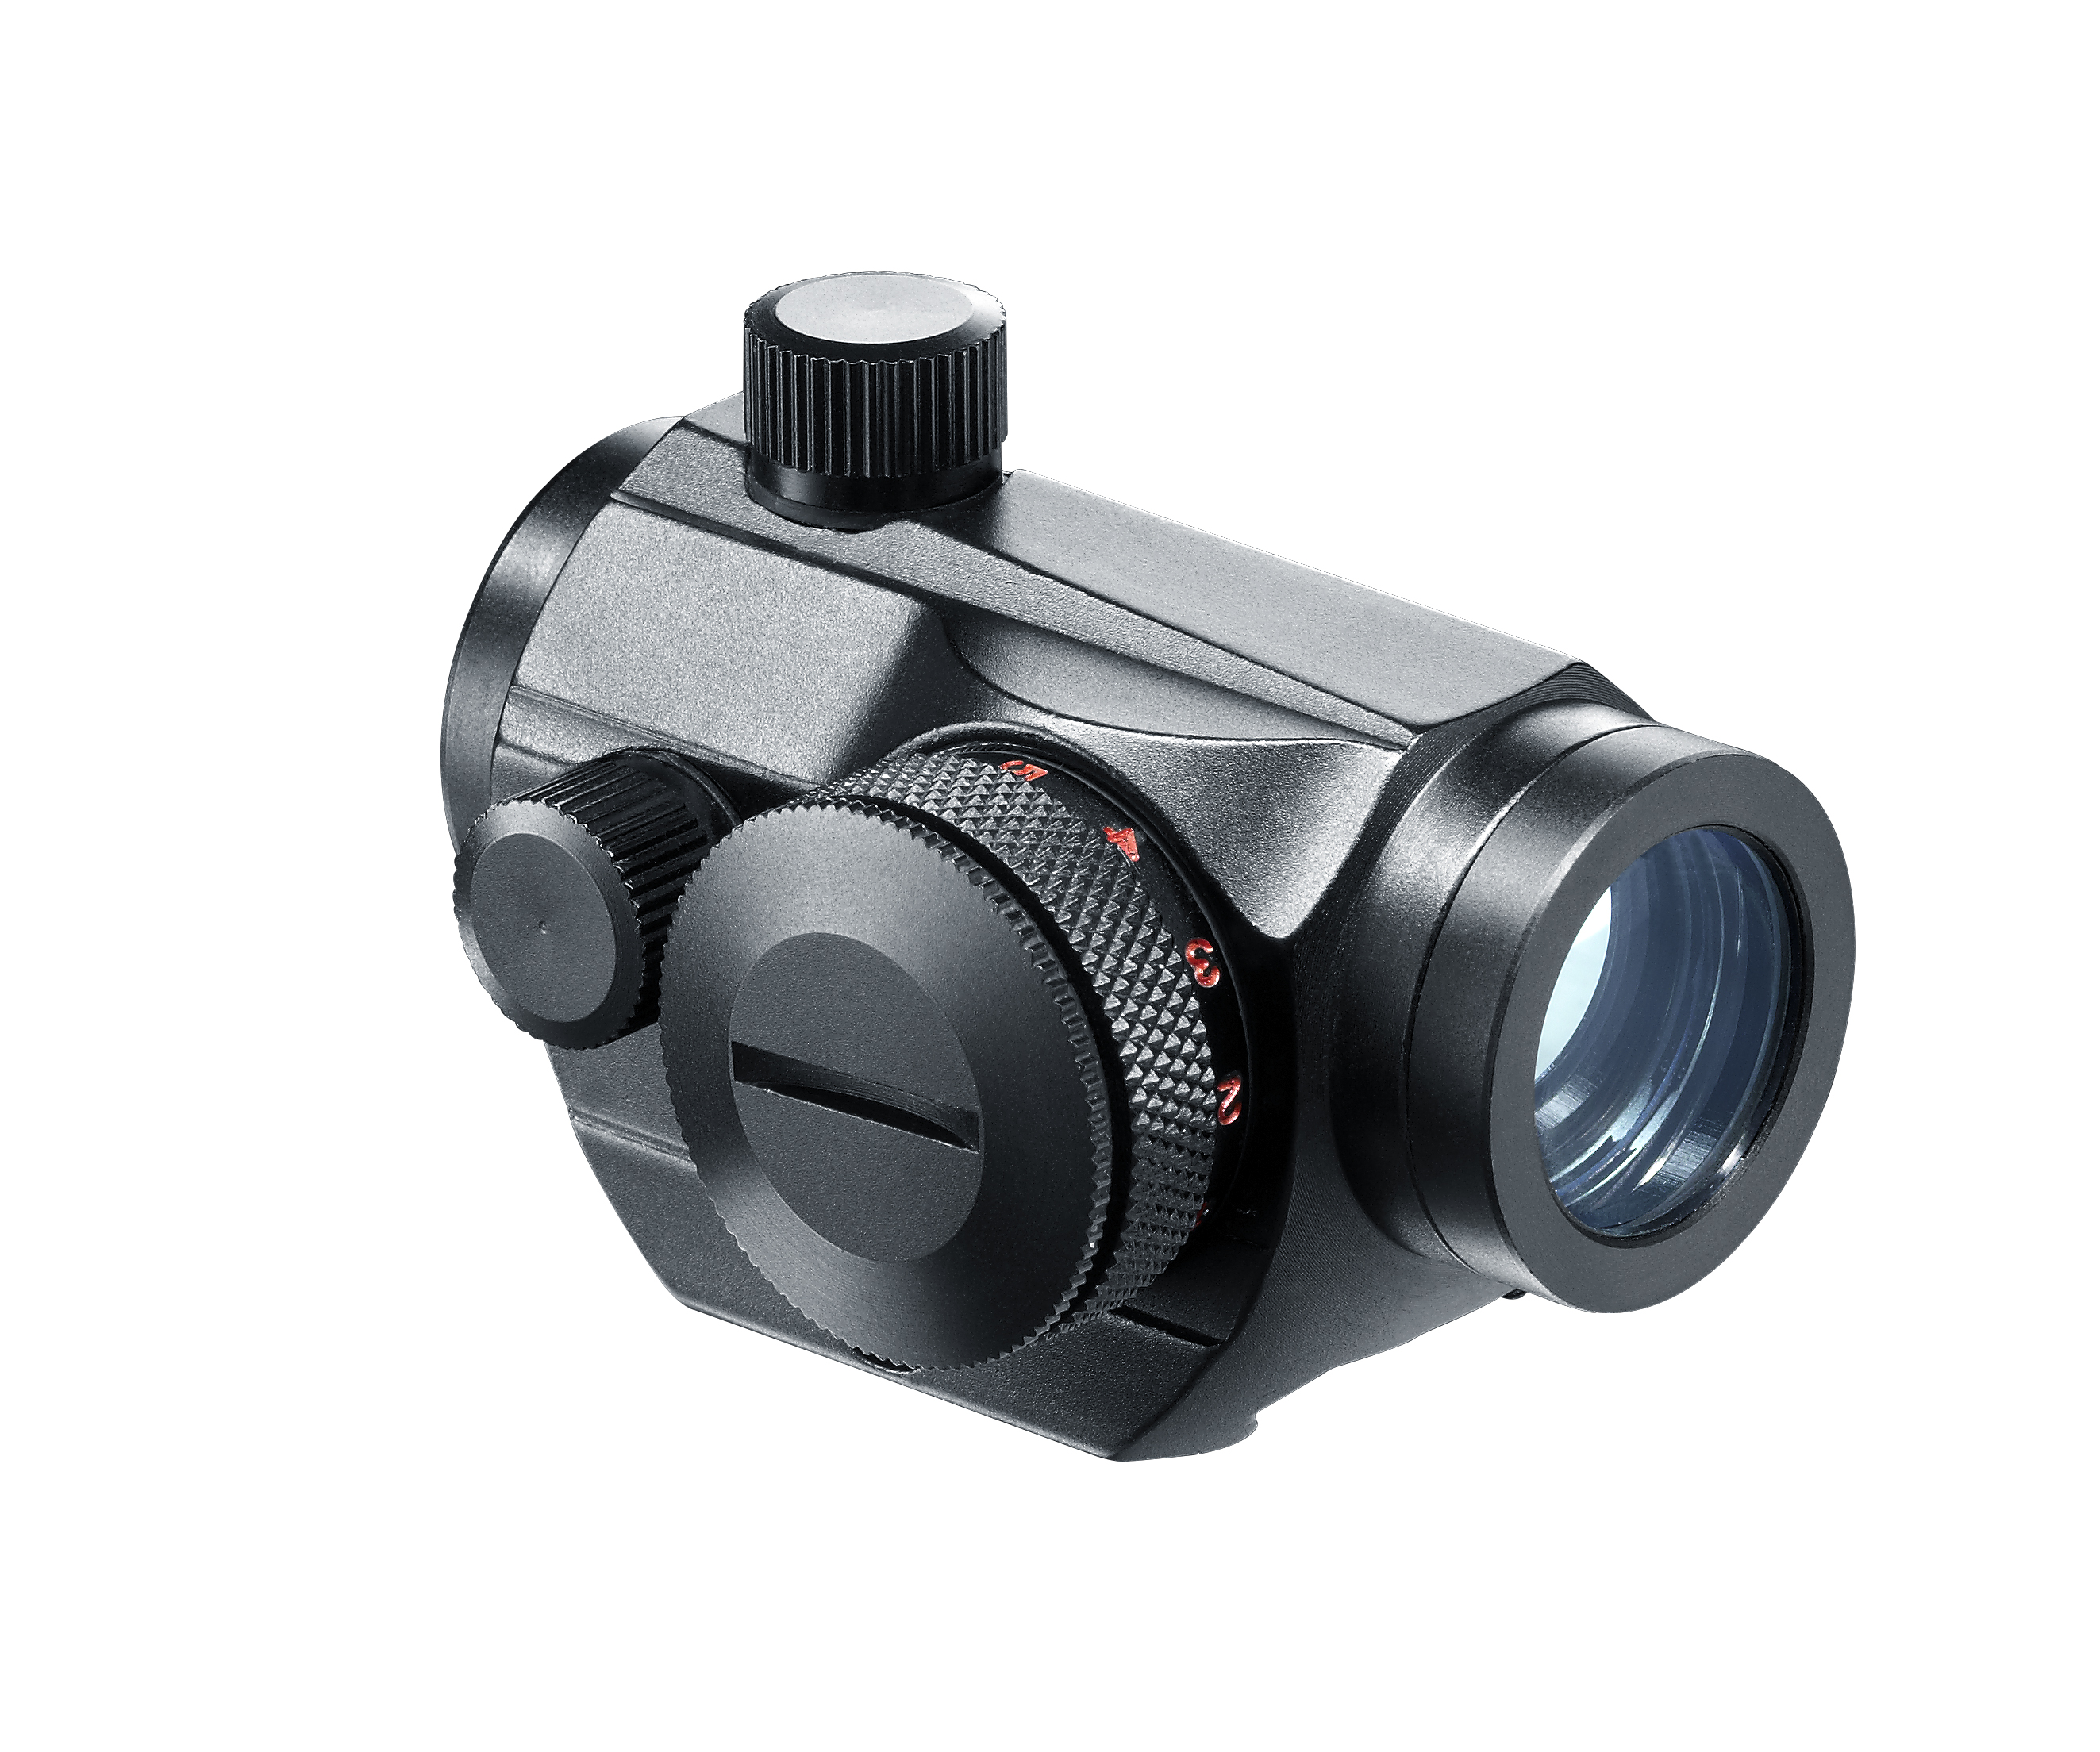 WALTHER (Umarex) Dot Sight Top Point VI